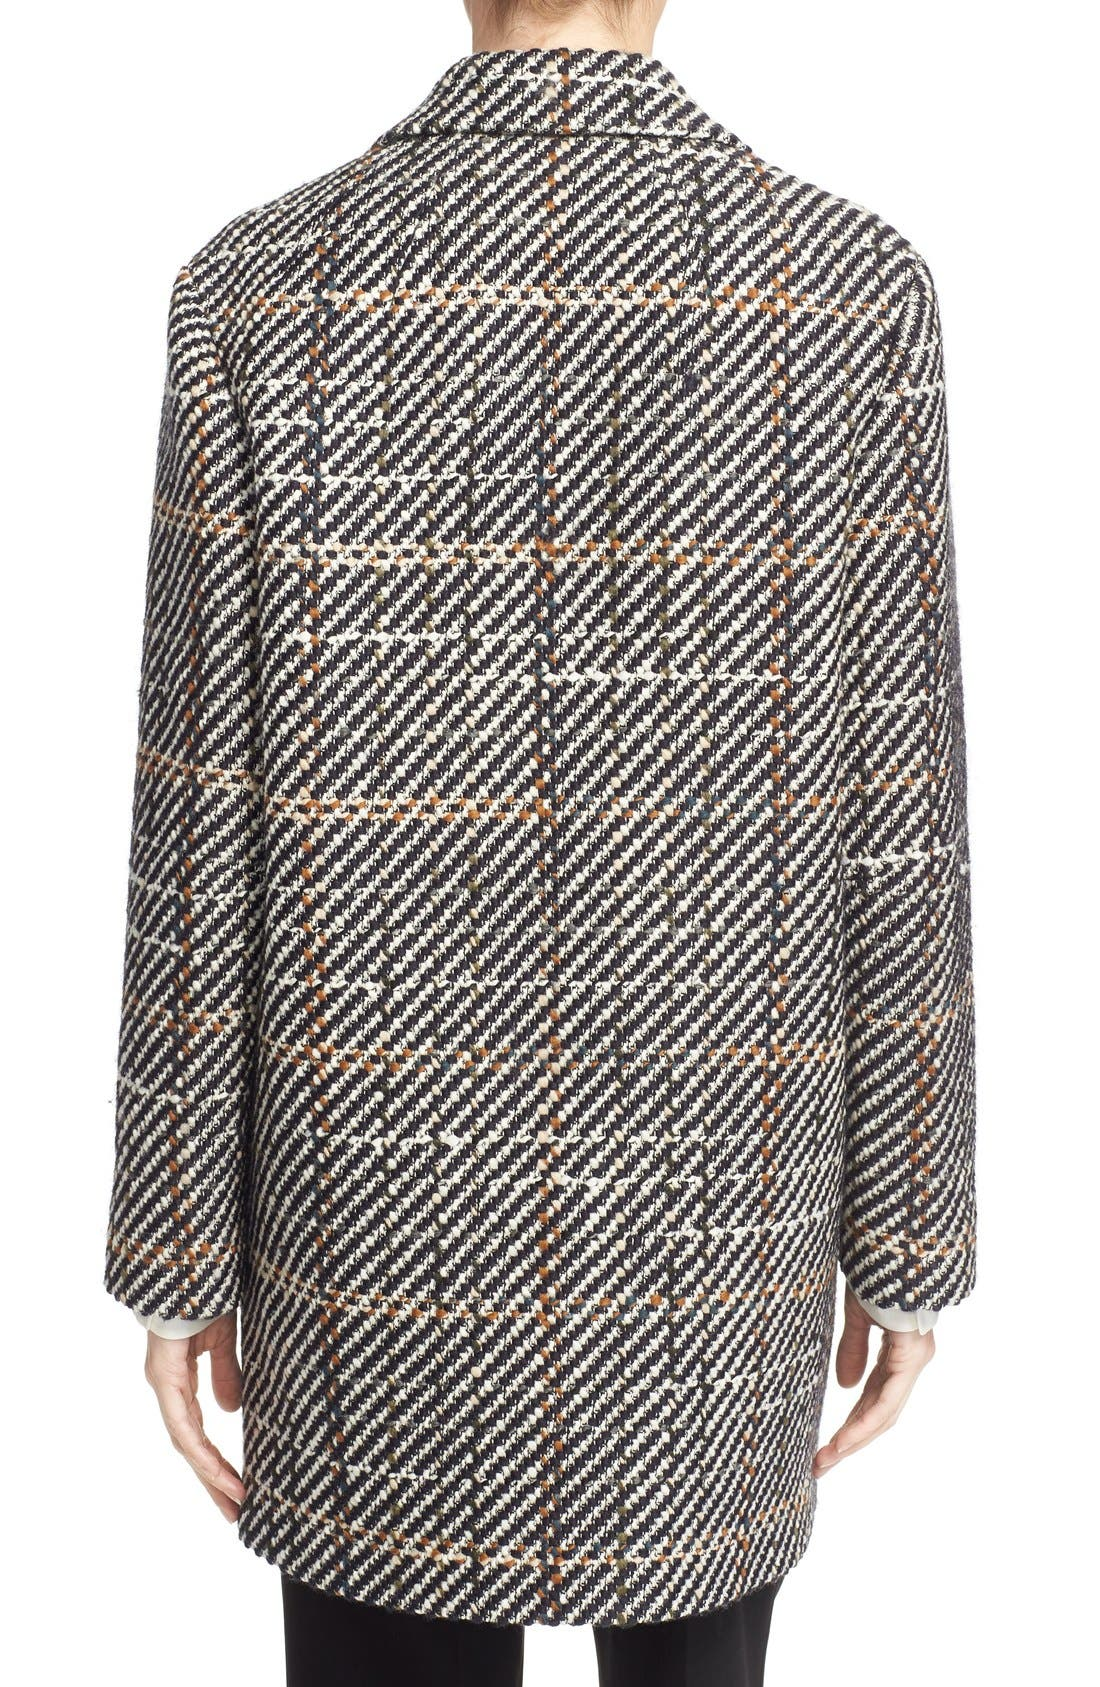 THEORY, Graphic Tweed Coat, Alternate thumbnail 3, color, 454